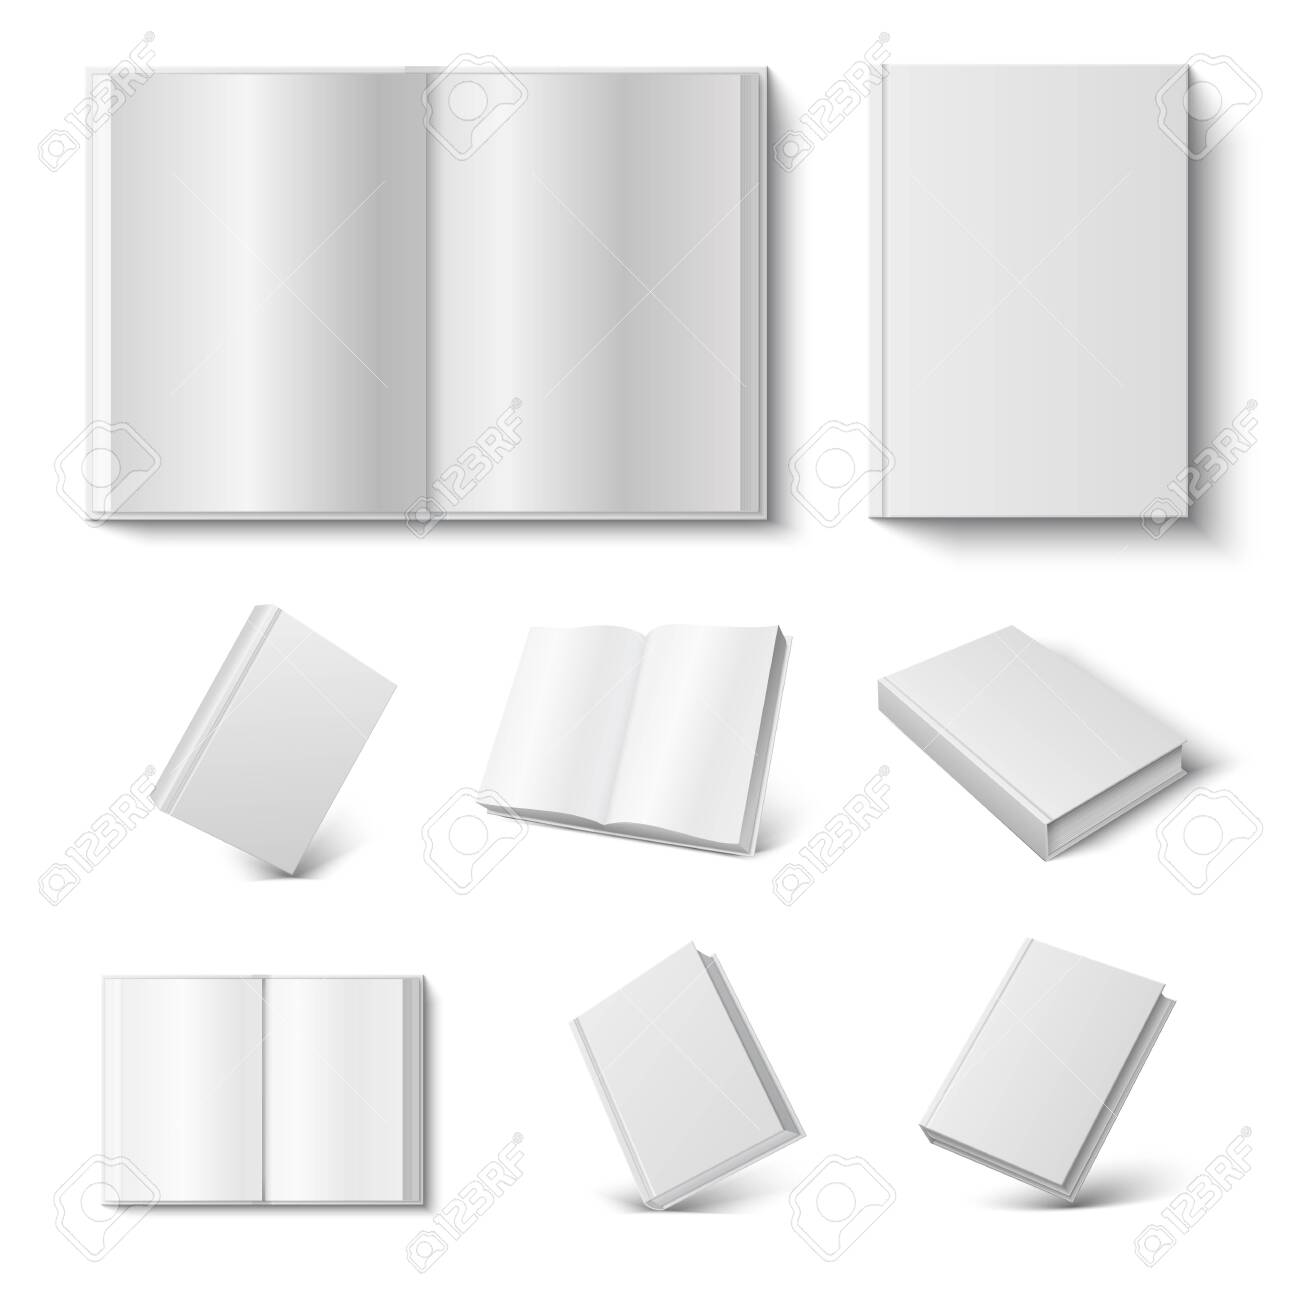 Realistic book. 3d mock up open and closed diary with blank hard cover on white background. Vector illustration booking mock up magazine set - 122318689